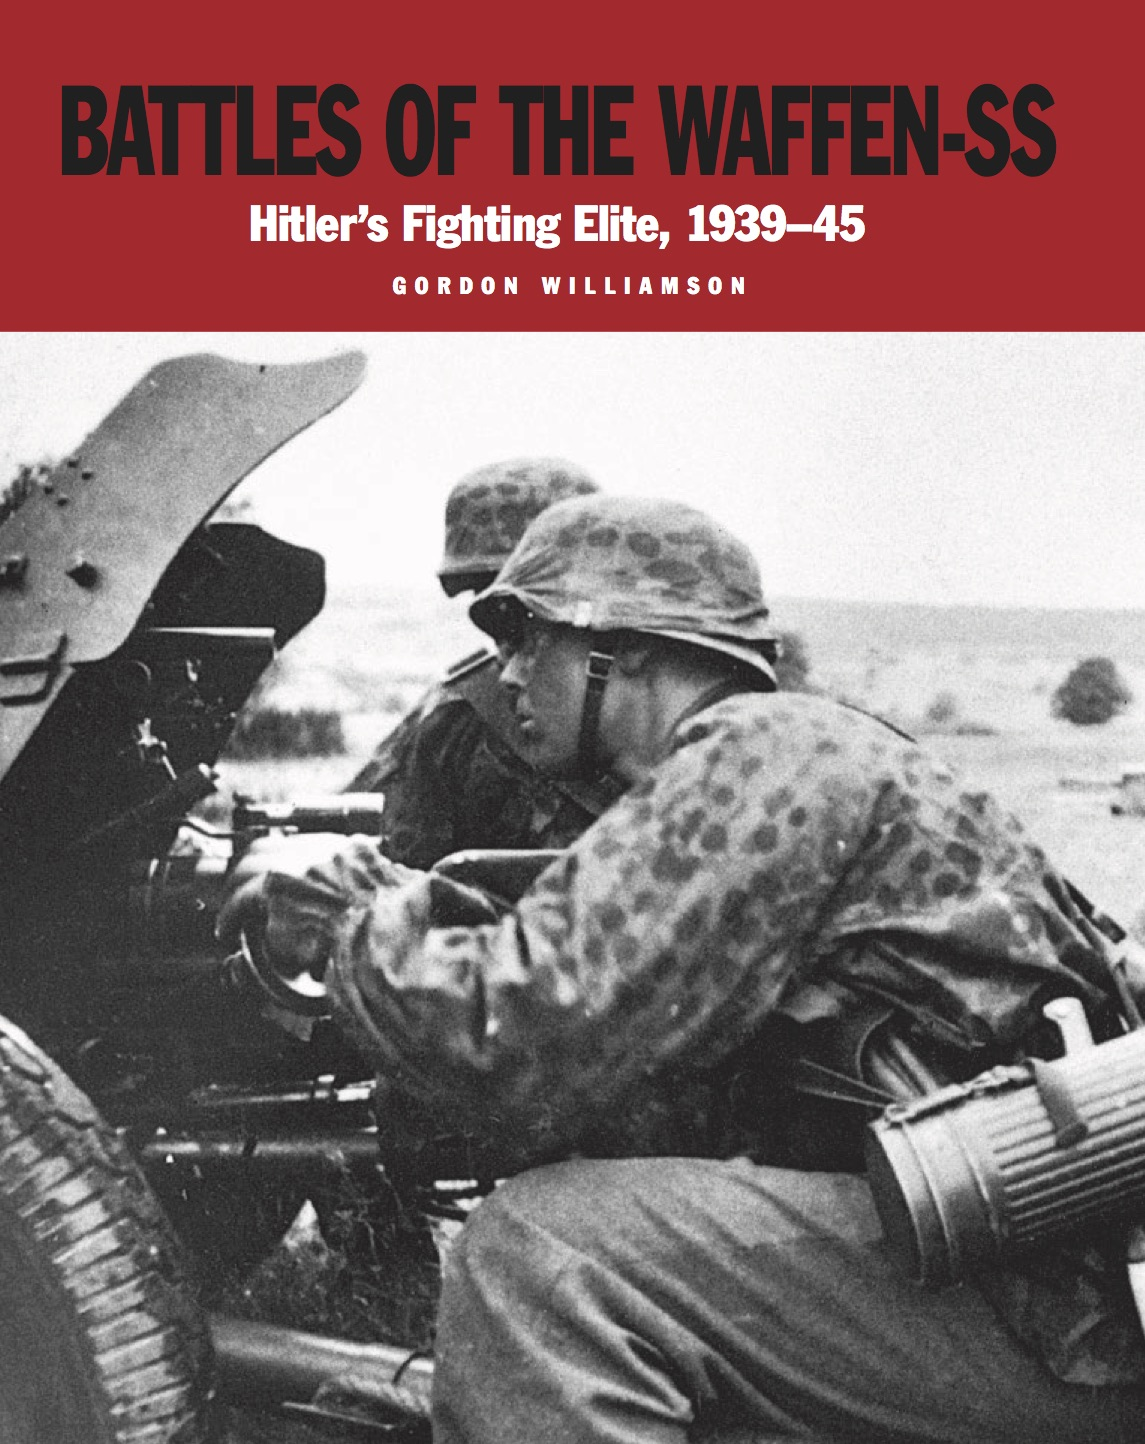 Battles of the Waffen-SS